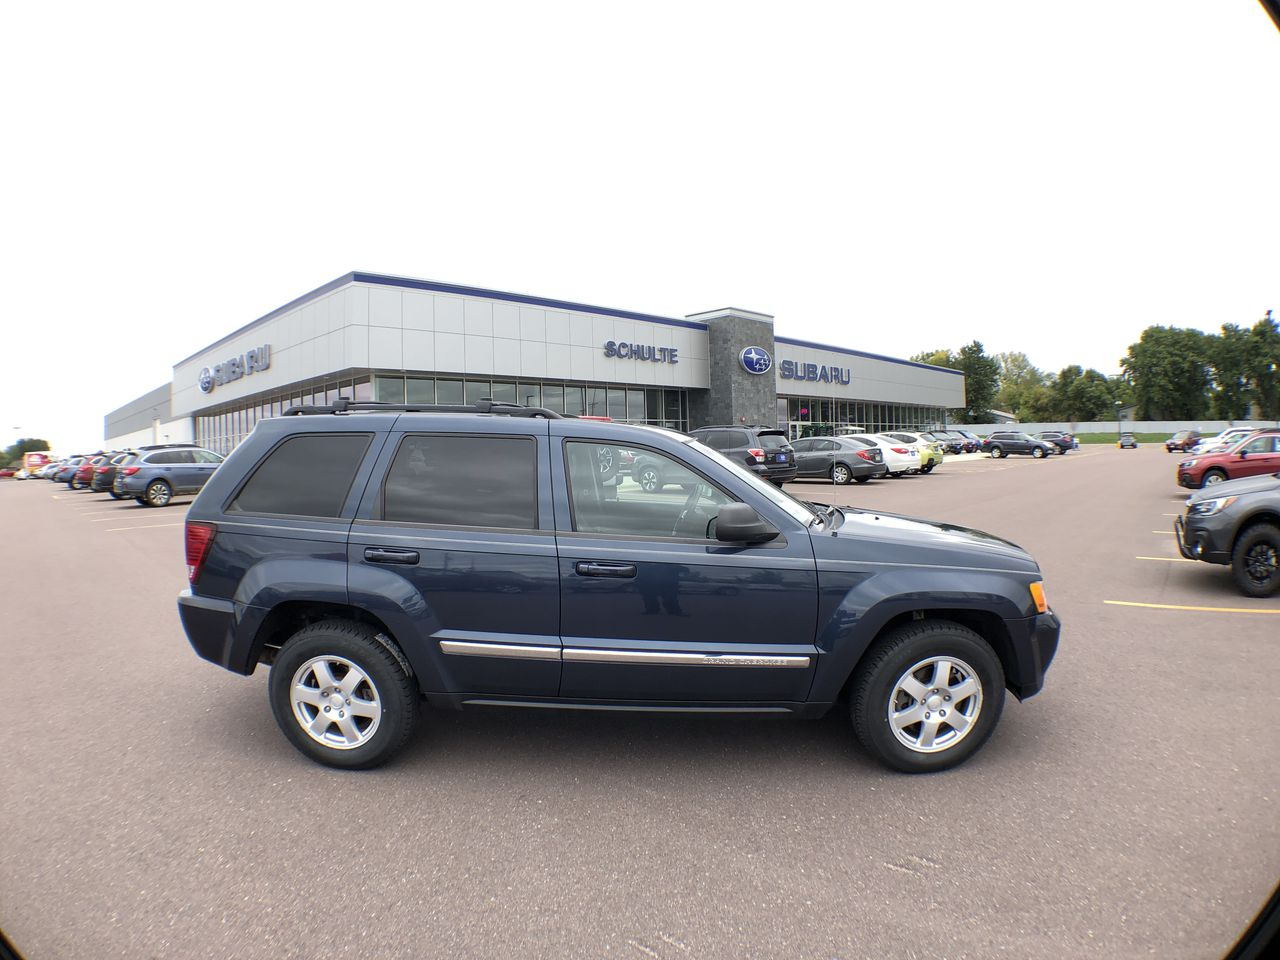 Used 2010 Jeep Grand Cherokee Laredo SUV For Sale In Sioux Falls, SD At  Schulte